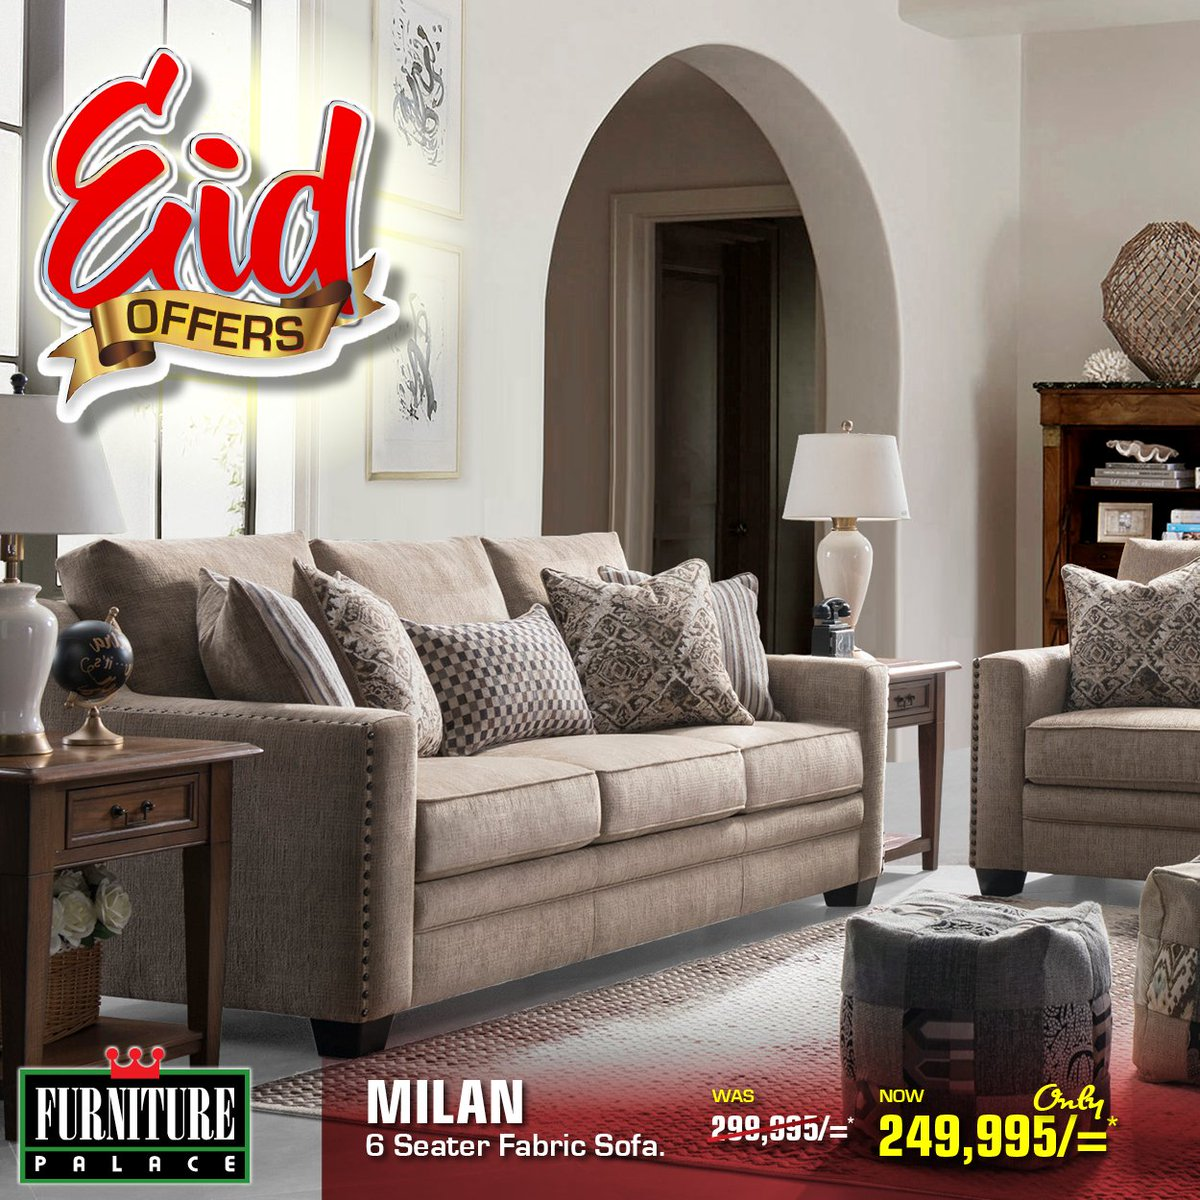 """Furniture Palace Ltd On Twitter: """"Milan Fabric Sofa At A Special Price And Sitting Here Waiting For You To Get It! #eidmubarak #dontwaitbuynow #dealspoa #furniturepalacekenya #fphotbuys #milan #ramadhanmubarak #ramadhanspecial #ramadhanoffer… Https://t ..."""